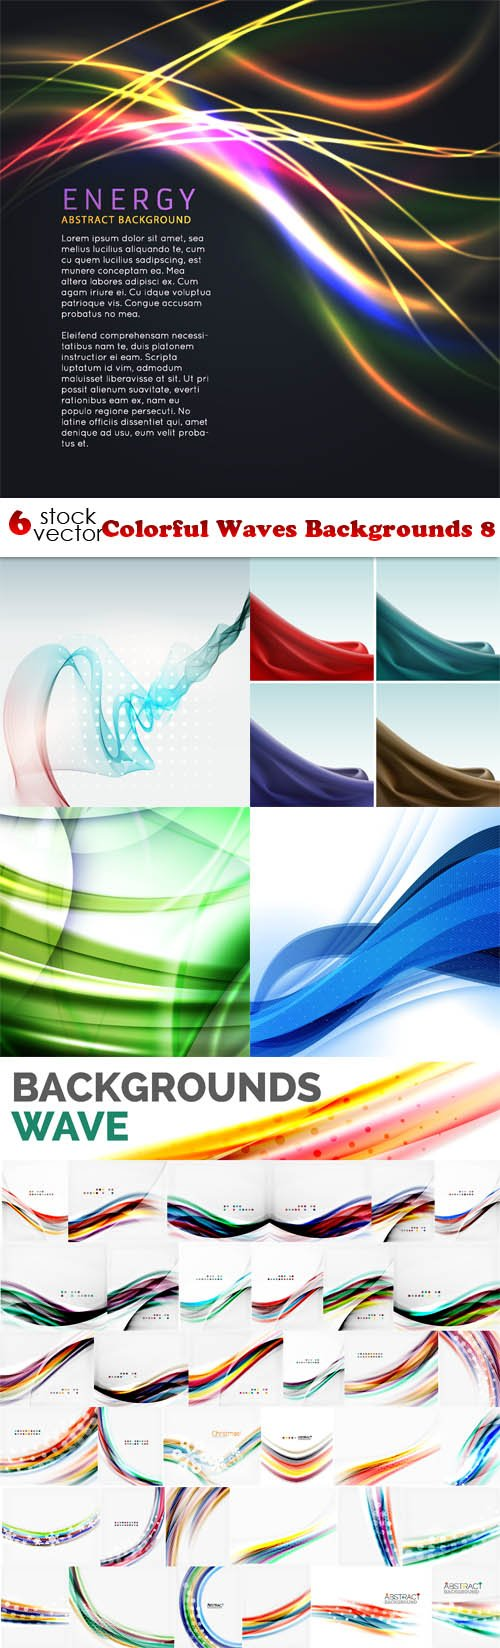 Vectors - Colorful Waves Backgrounds 8